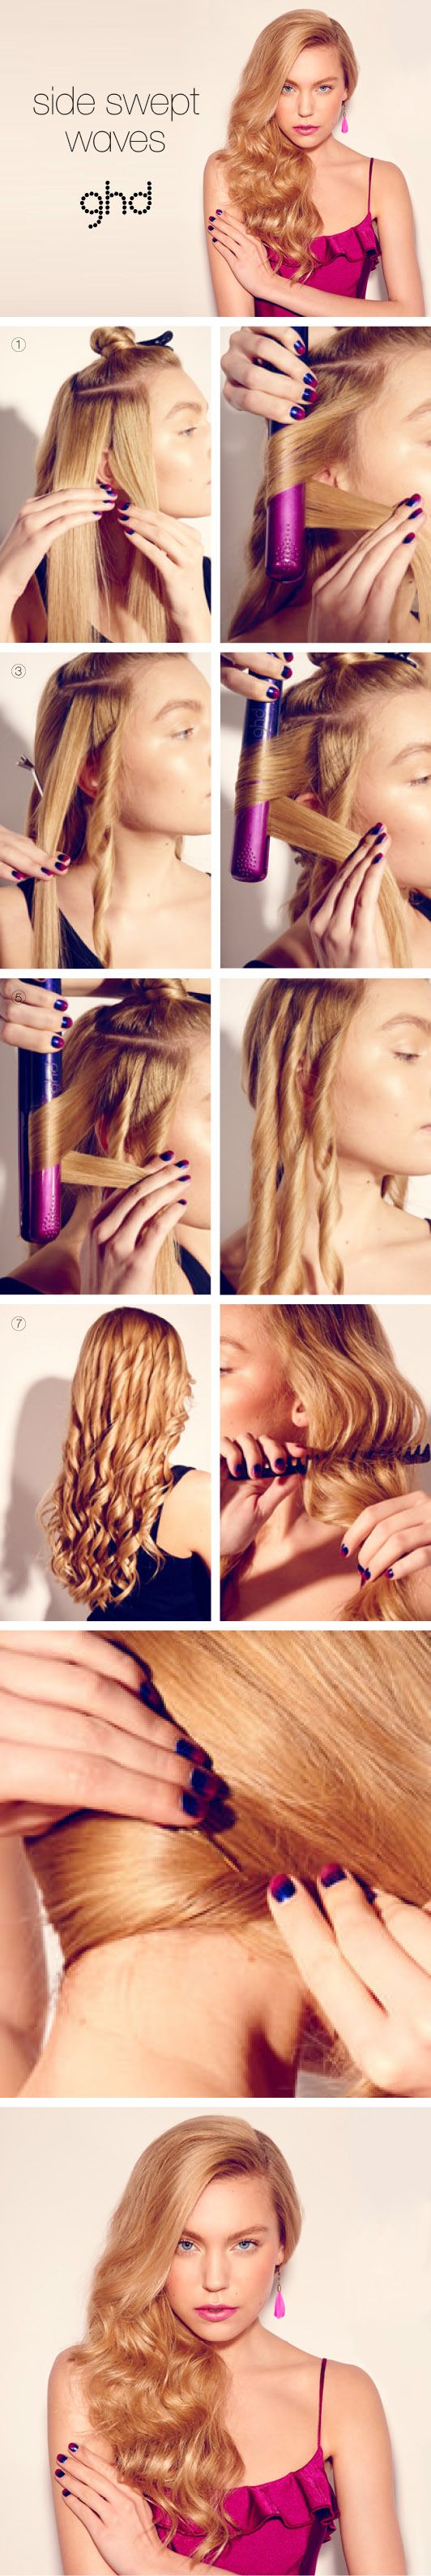 HOW-TO HAIRSTYLES: SIDE SWEPT WAVES PARTY TIME? Make an ENTRANCE with the ULTIMATE in sultry SIDE SWEEPS.